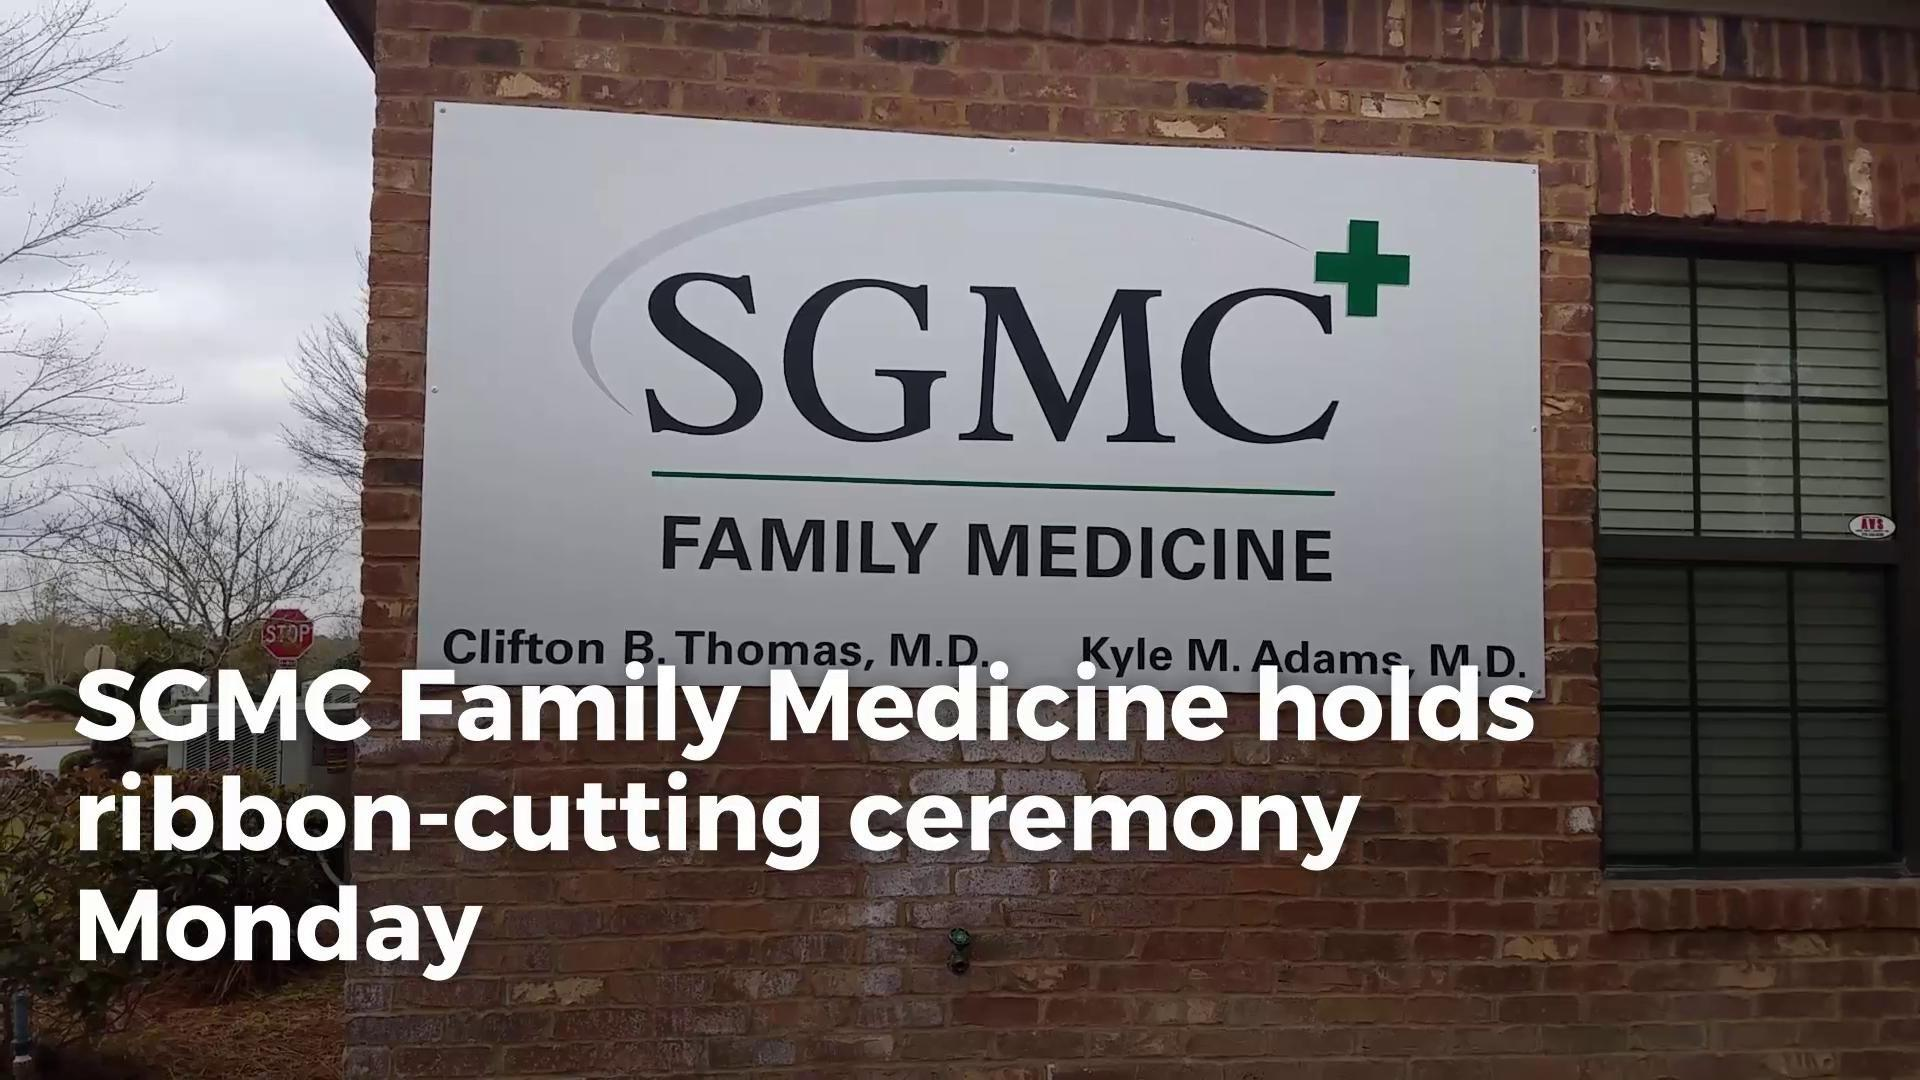 SGMC Family Medicine holds ribbon cutting ceremony Monday March 12